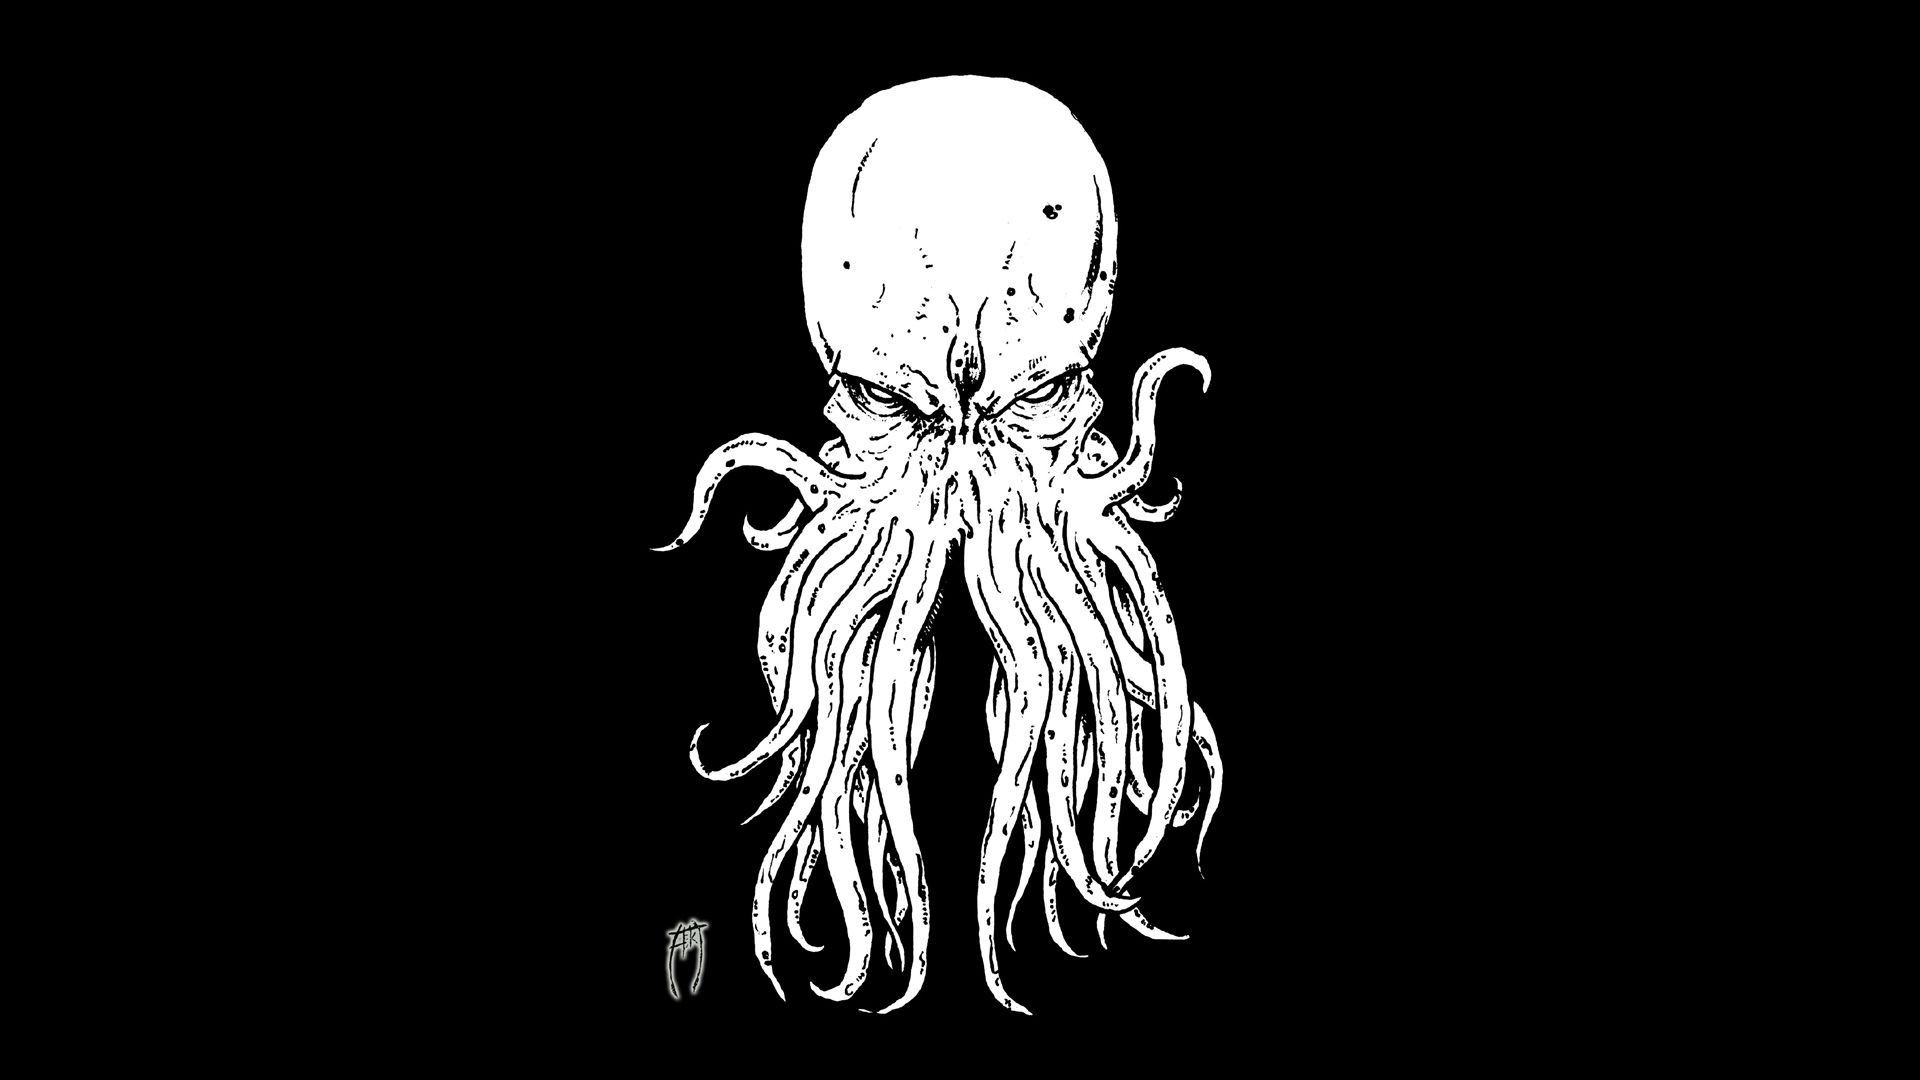 1920x1080 Download free cthulhu wallpapers for your mobile phone - most